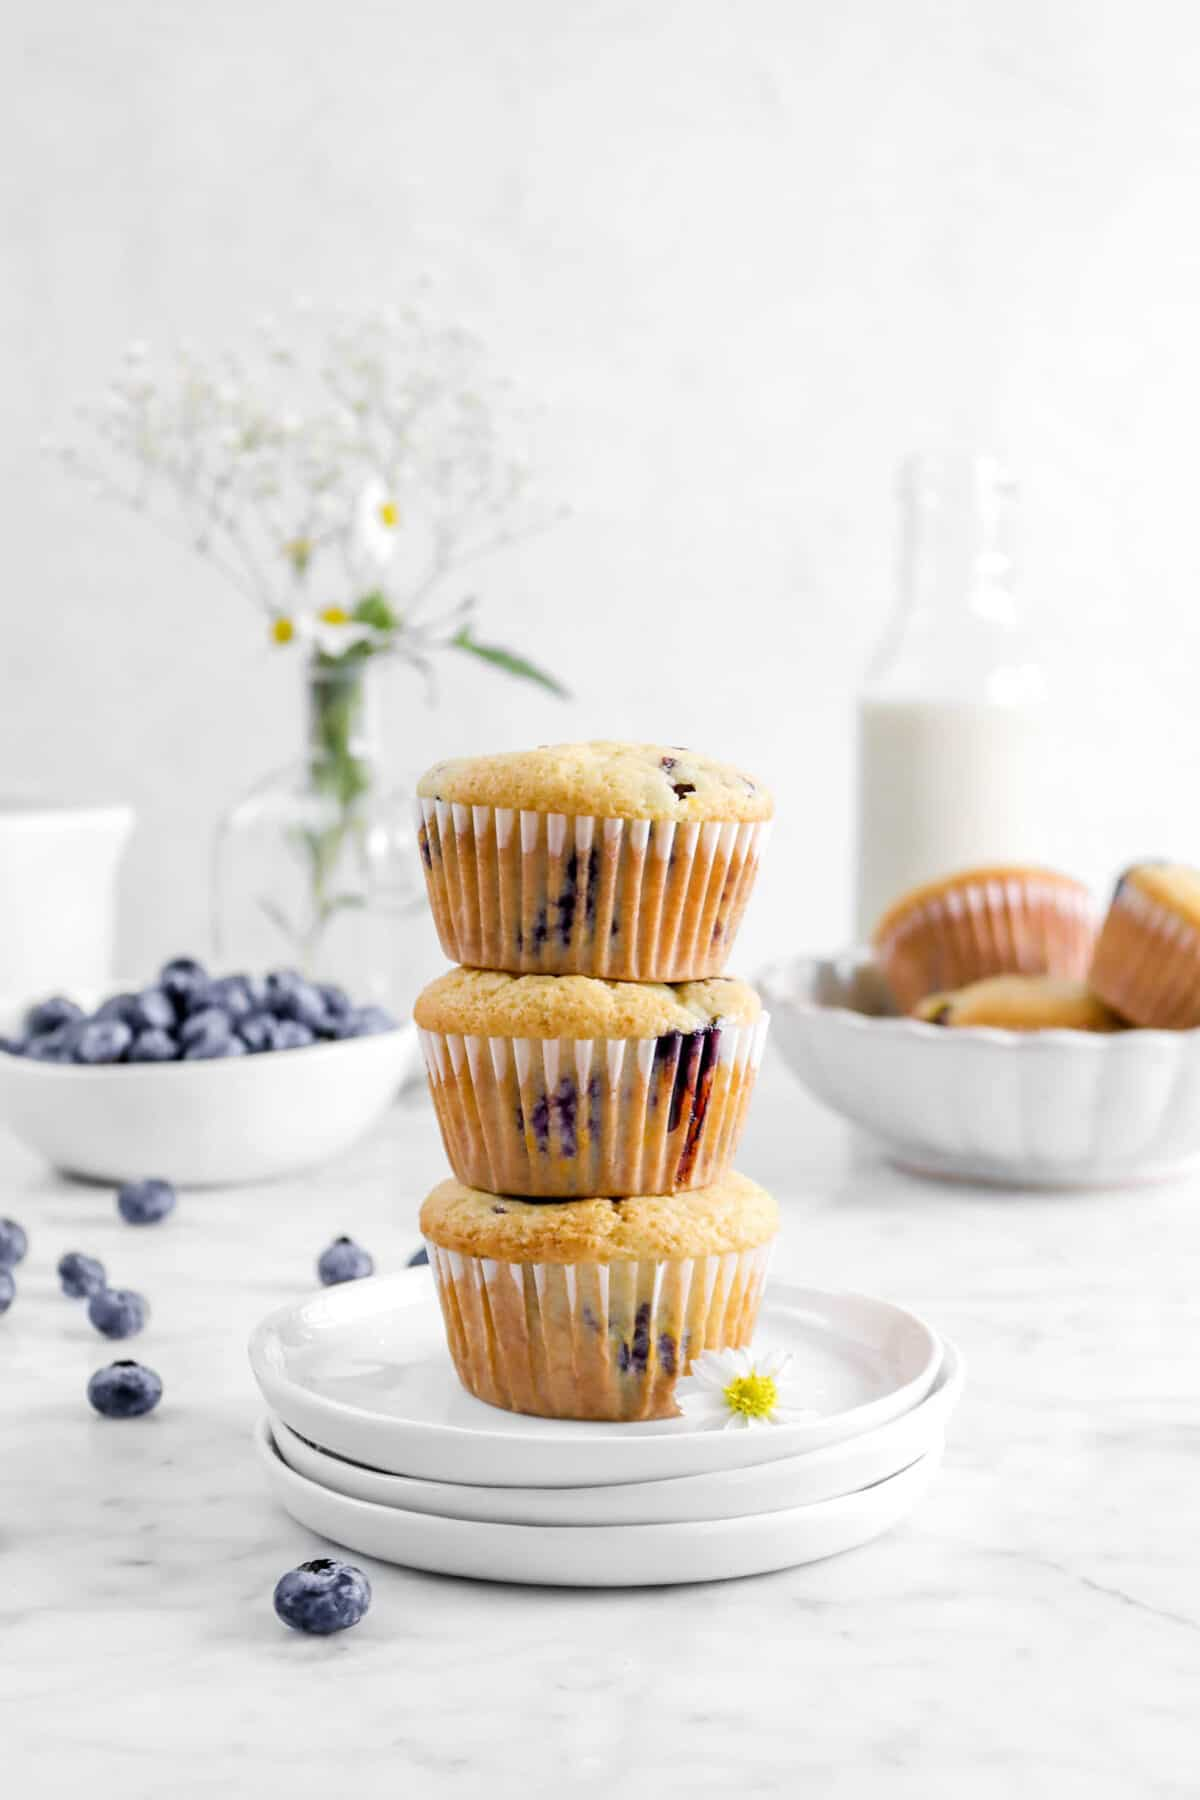 three stacked muffins on three stacked plates with flowers, blueberries, a glass of milk, and more blueberry muffins behind